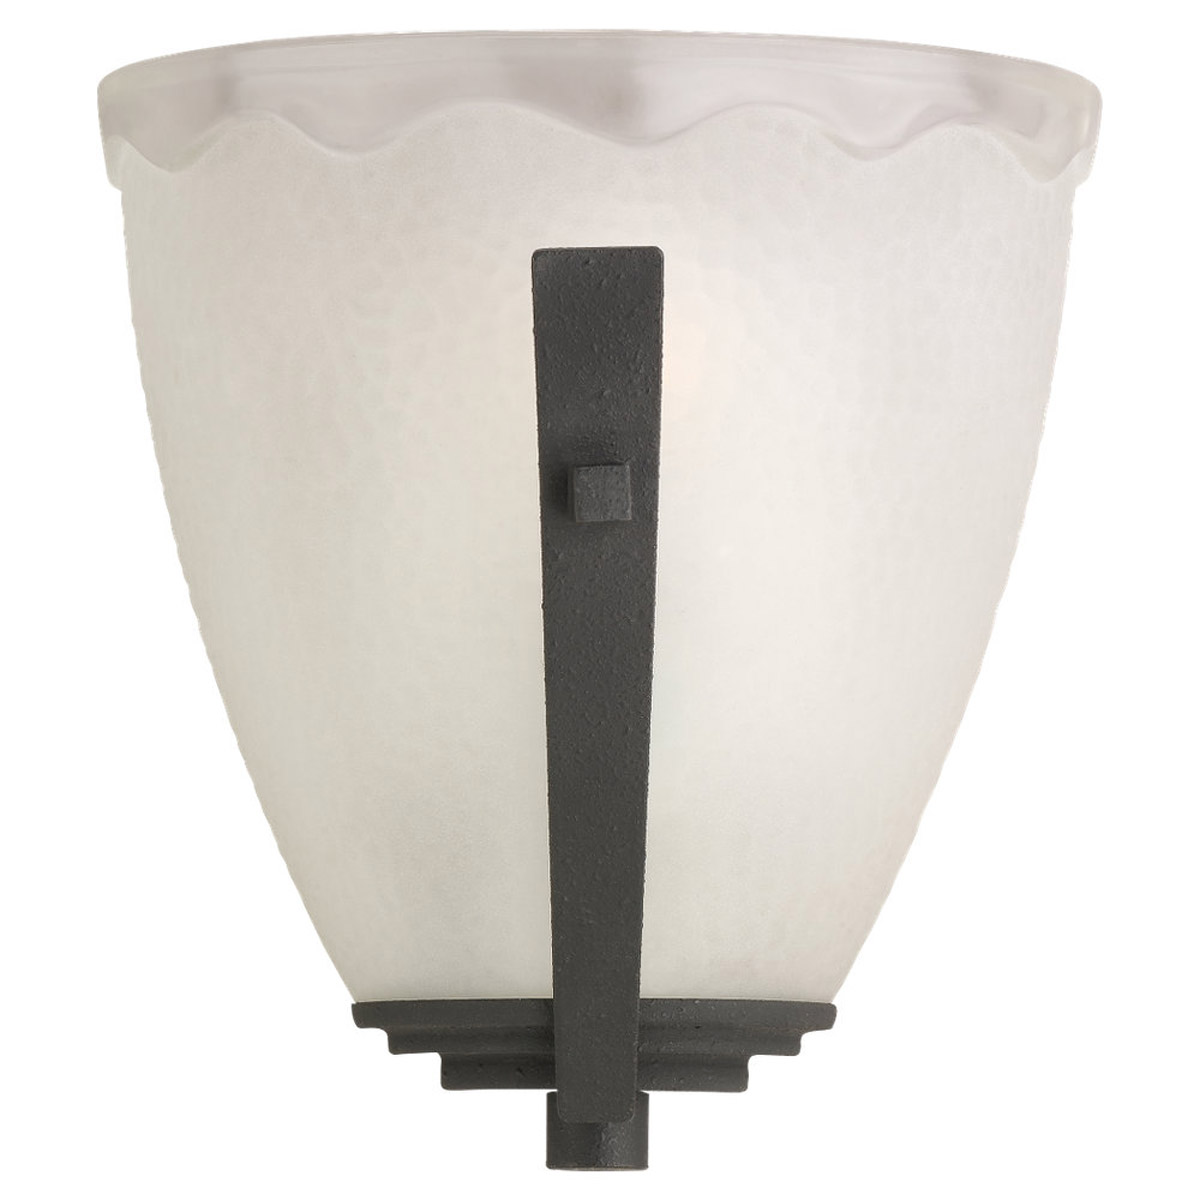 Sea Gull Lighting Signature 1 Light Bath Vanity in Blacksmith 41640-839